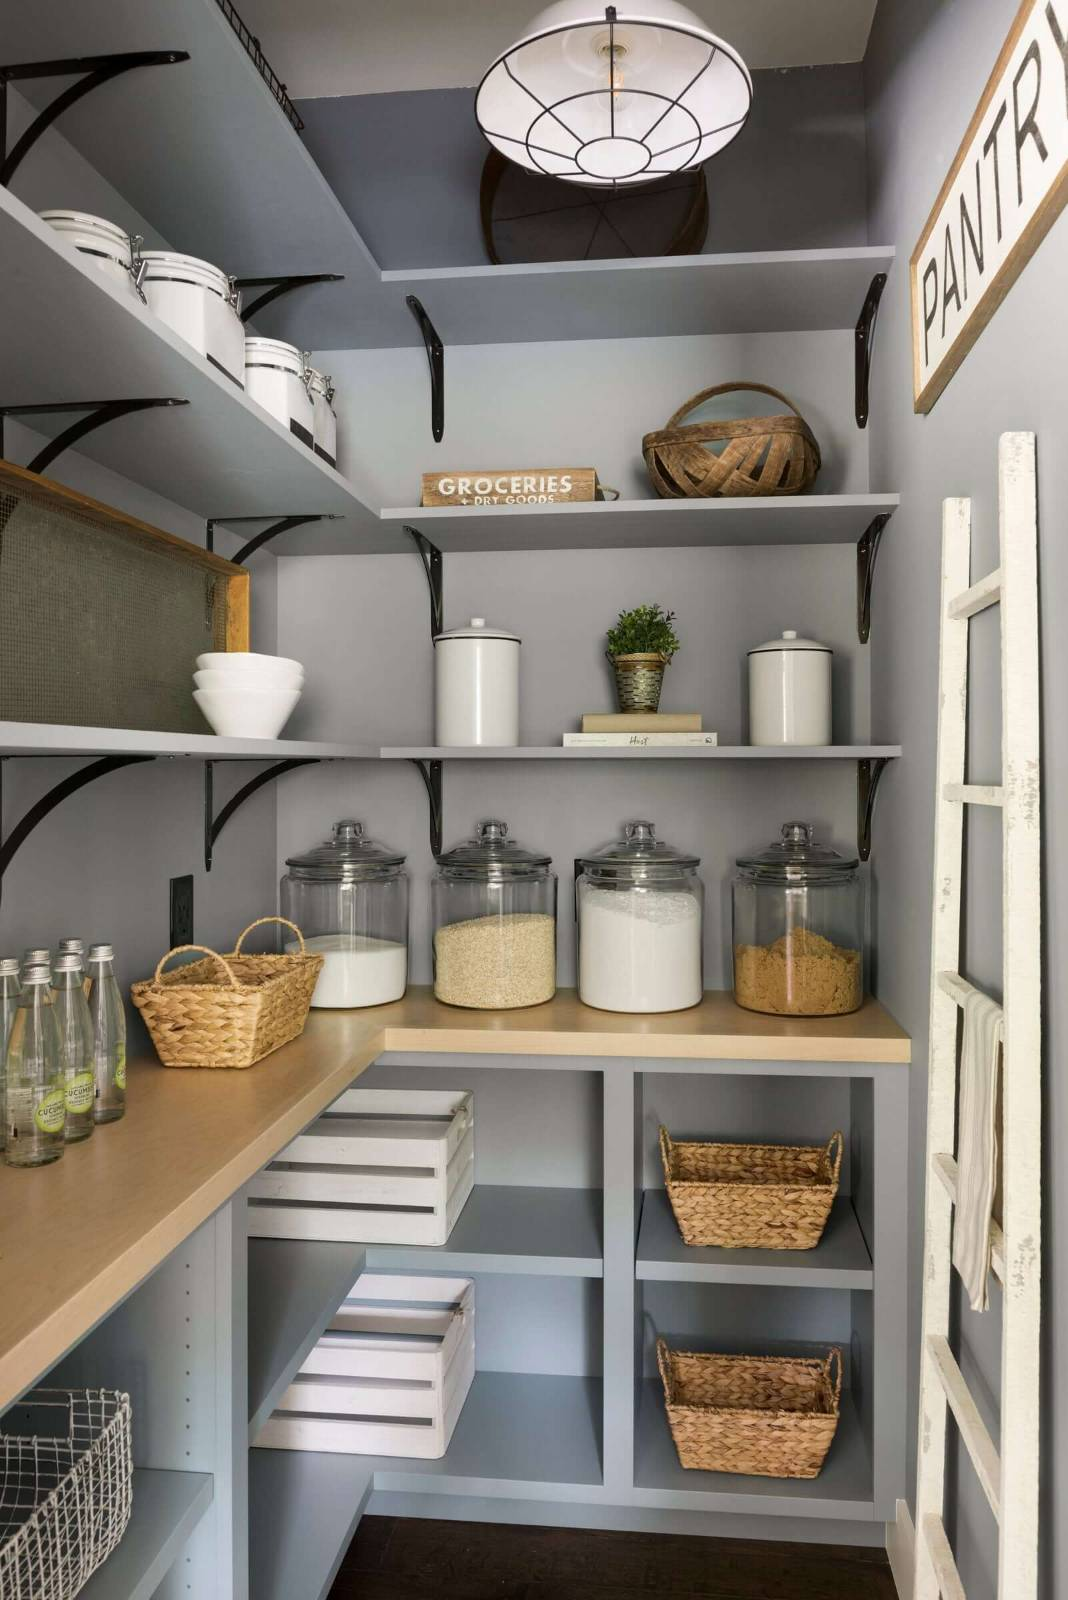 Walk in Pantry shelf hights